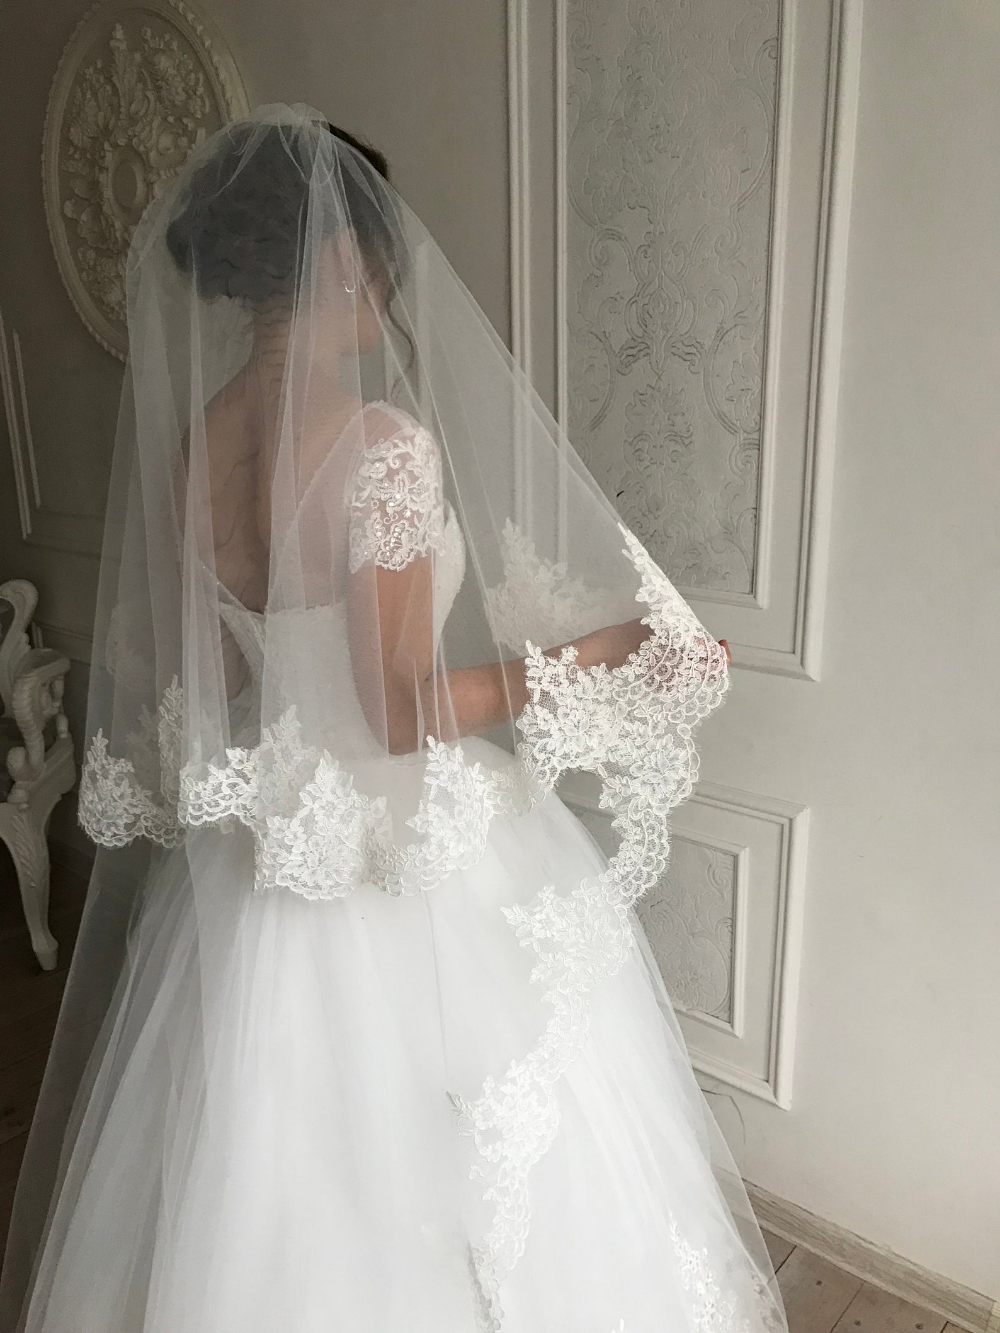 Cathedral Wedding Veil Lace Wedding Veil Lace Trim Bridal Veil Etsy In 2020 Wedding Veils Lace Wedding Veil Lace Trim Ivory Wedding Veils